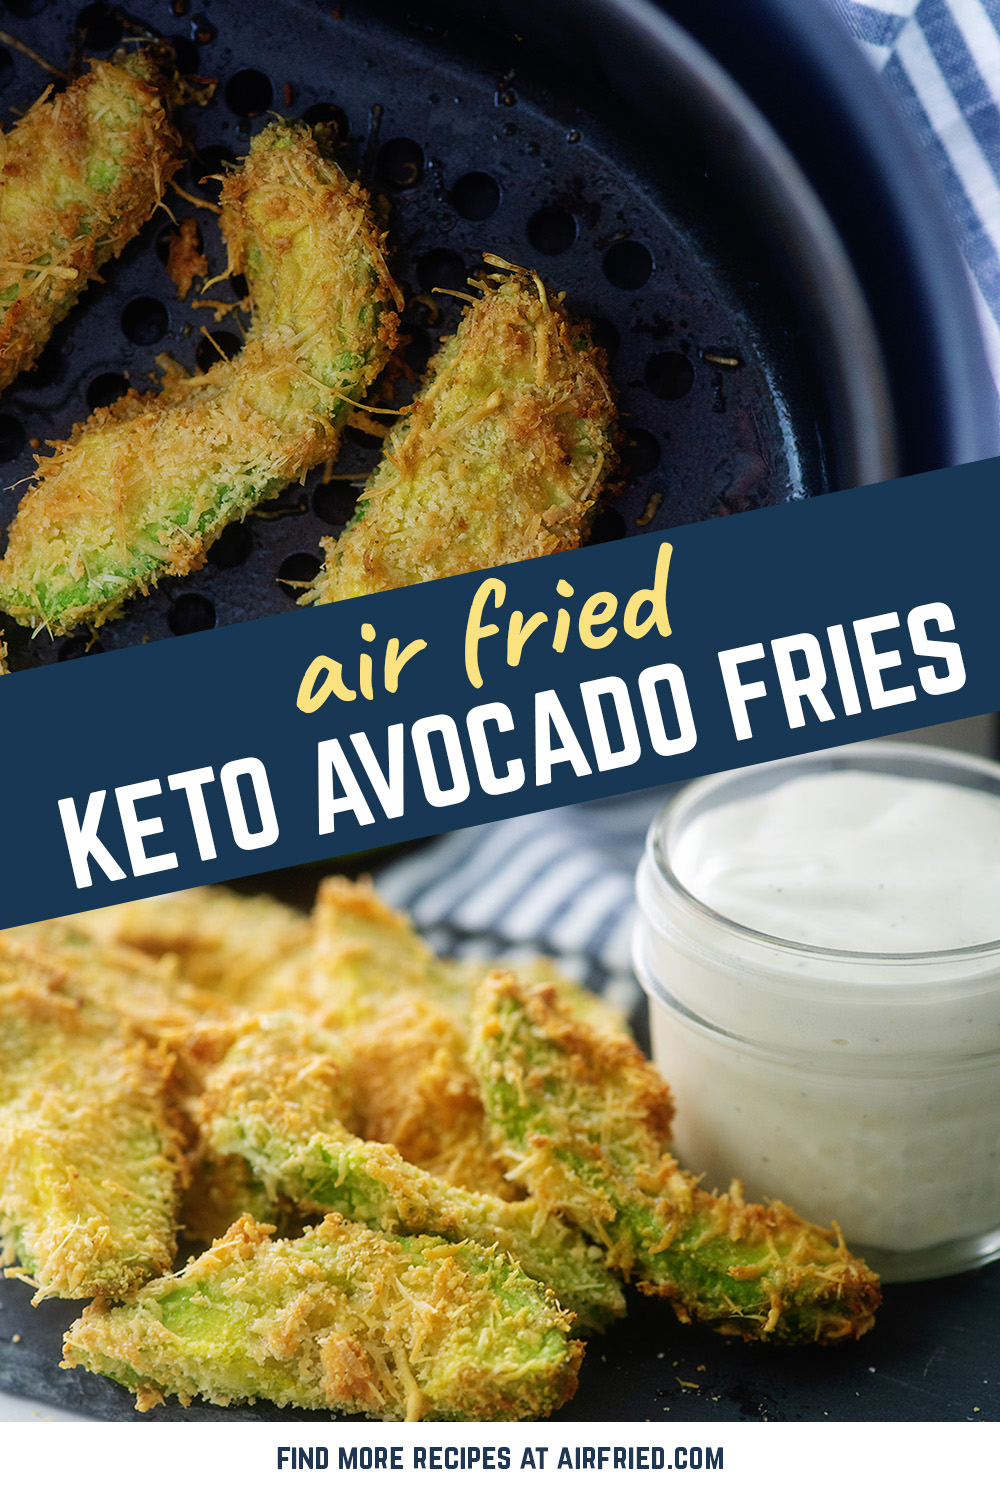 These avocado fries are breaded with a low carb breading and cooked in the air fryer!  #airfried #recipe #Keto